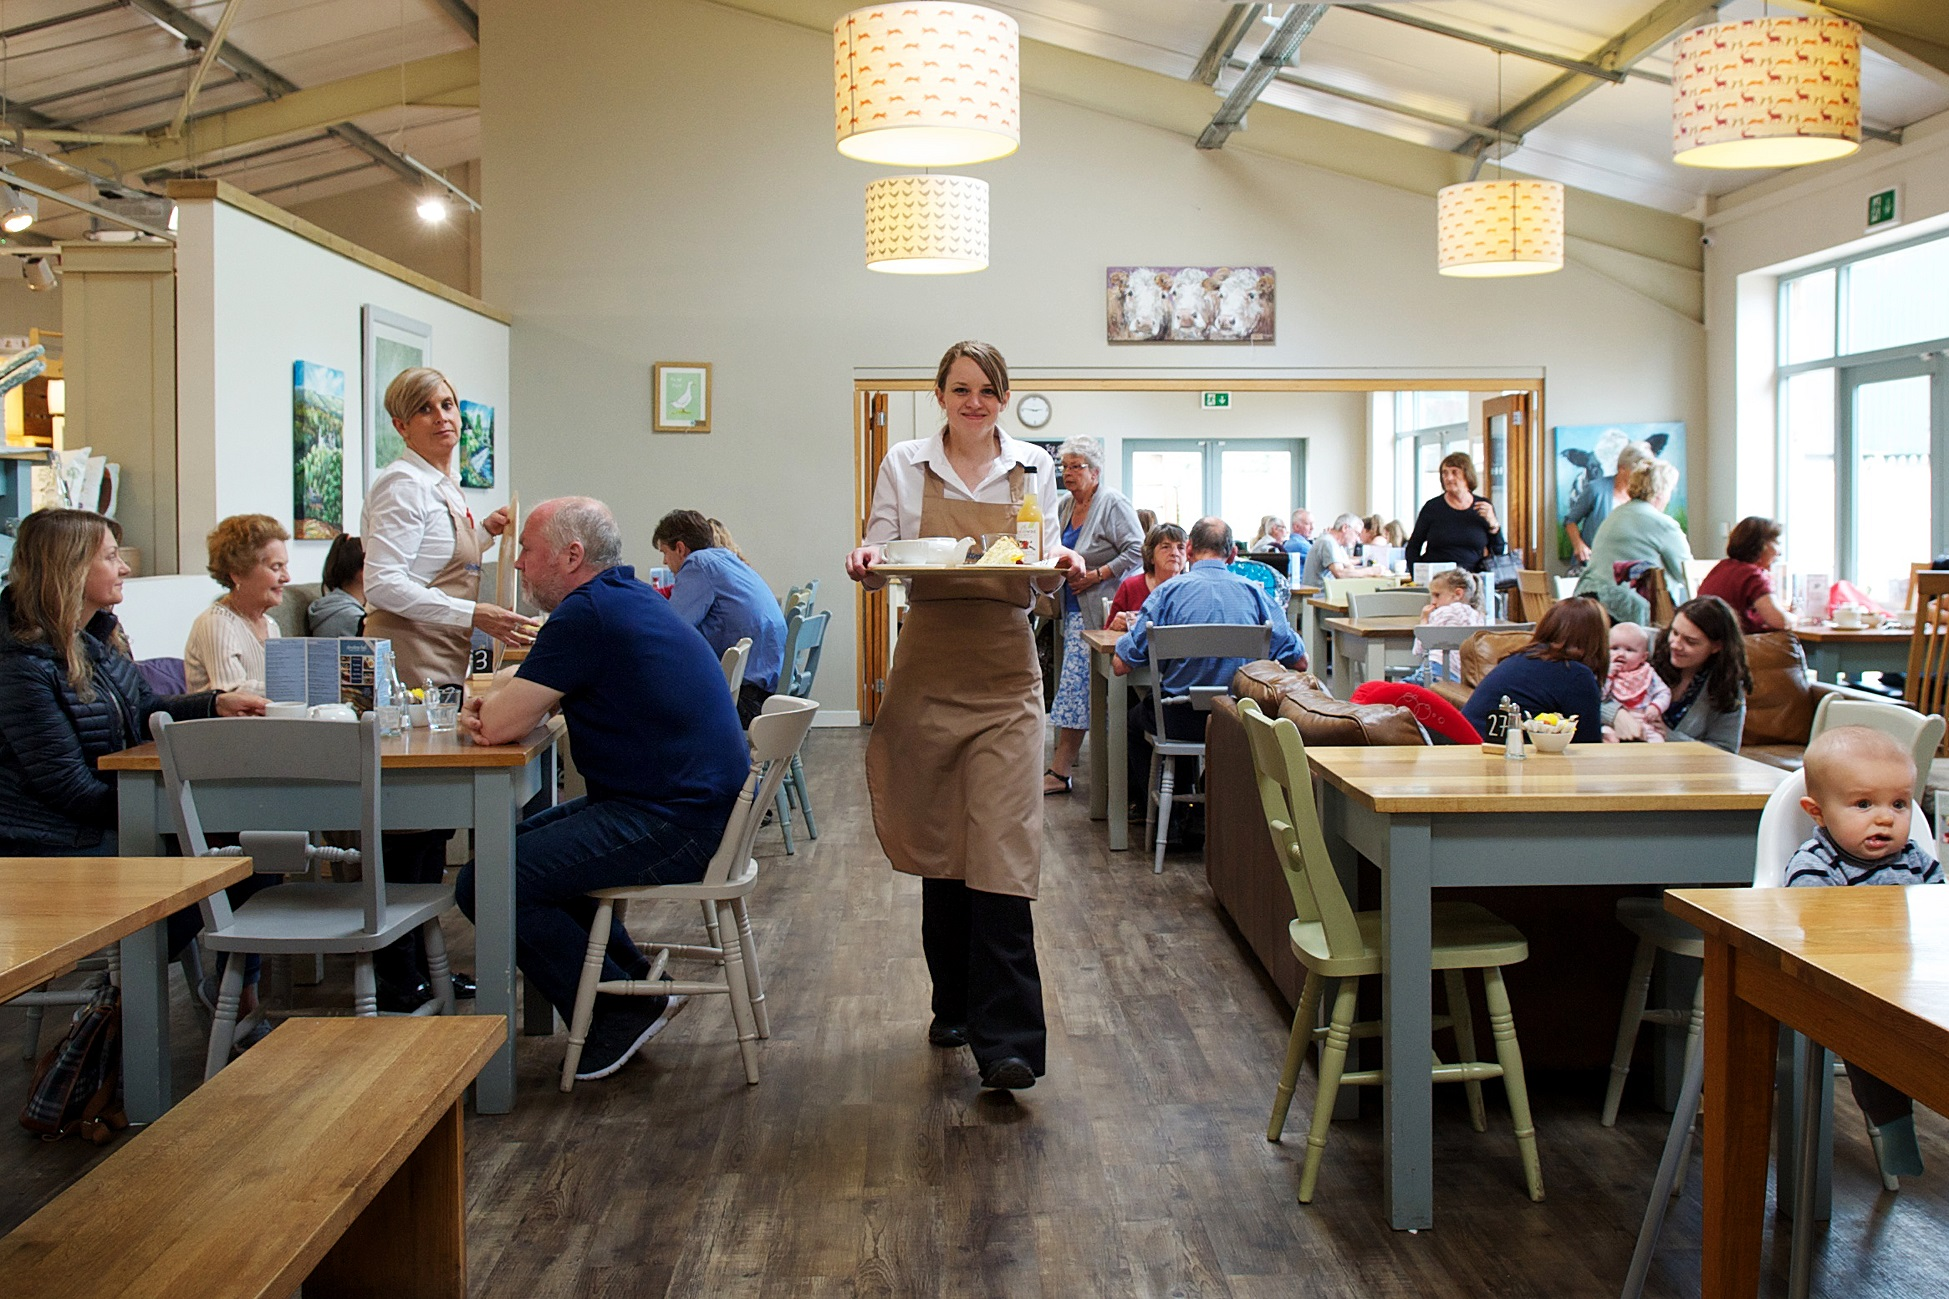 Denstone Hall Farm Shop and Cafe ended 2017 on a high with awards from the Farm Retail Association. Penguin PR: public relations, media and communications